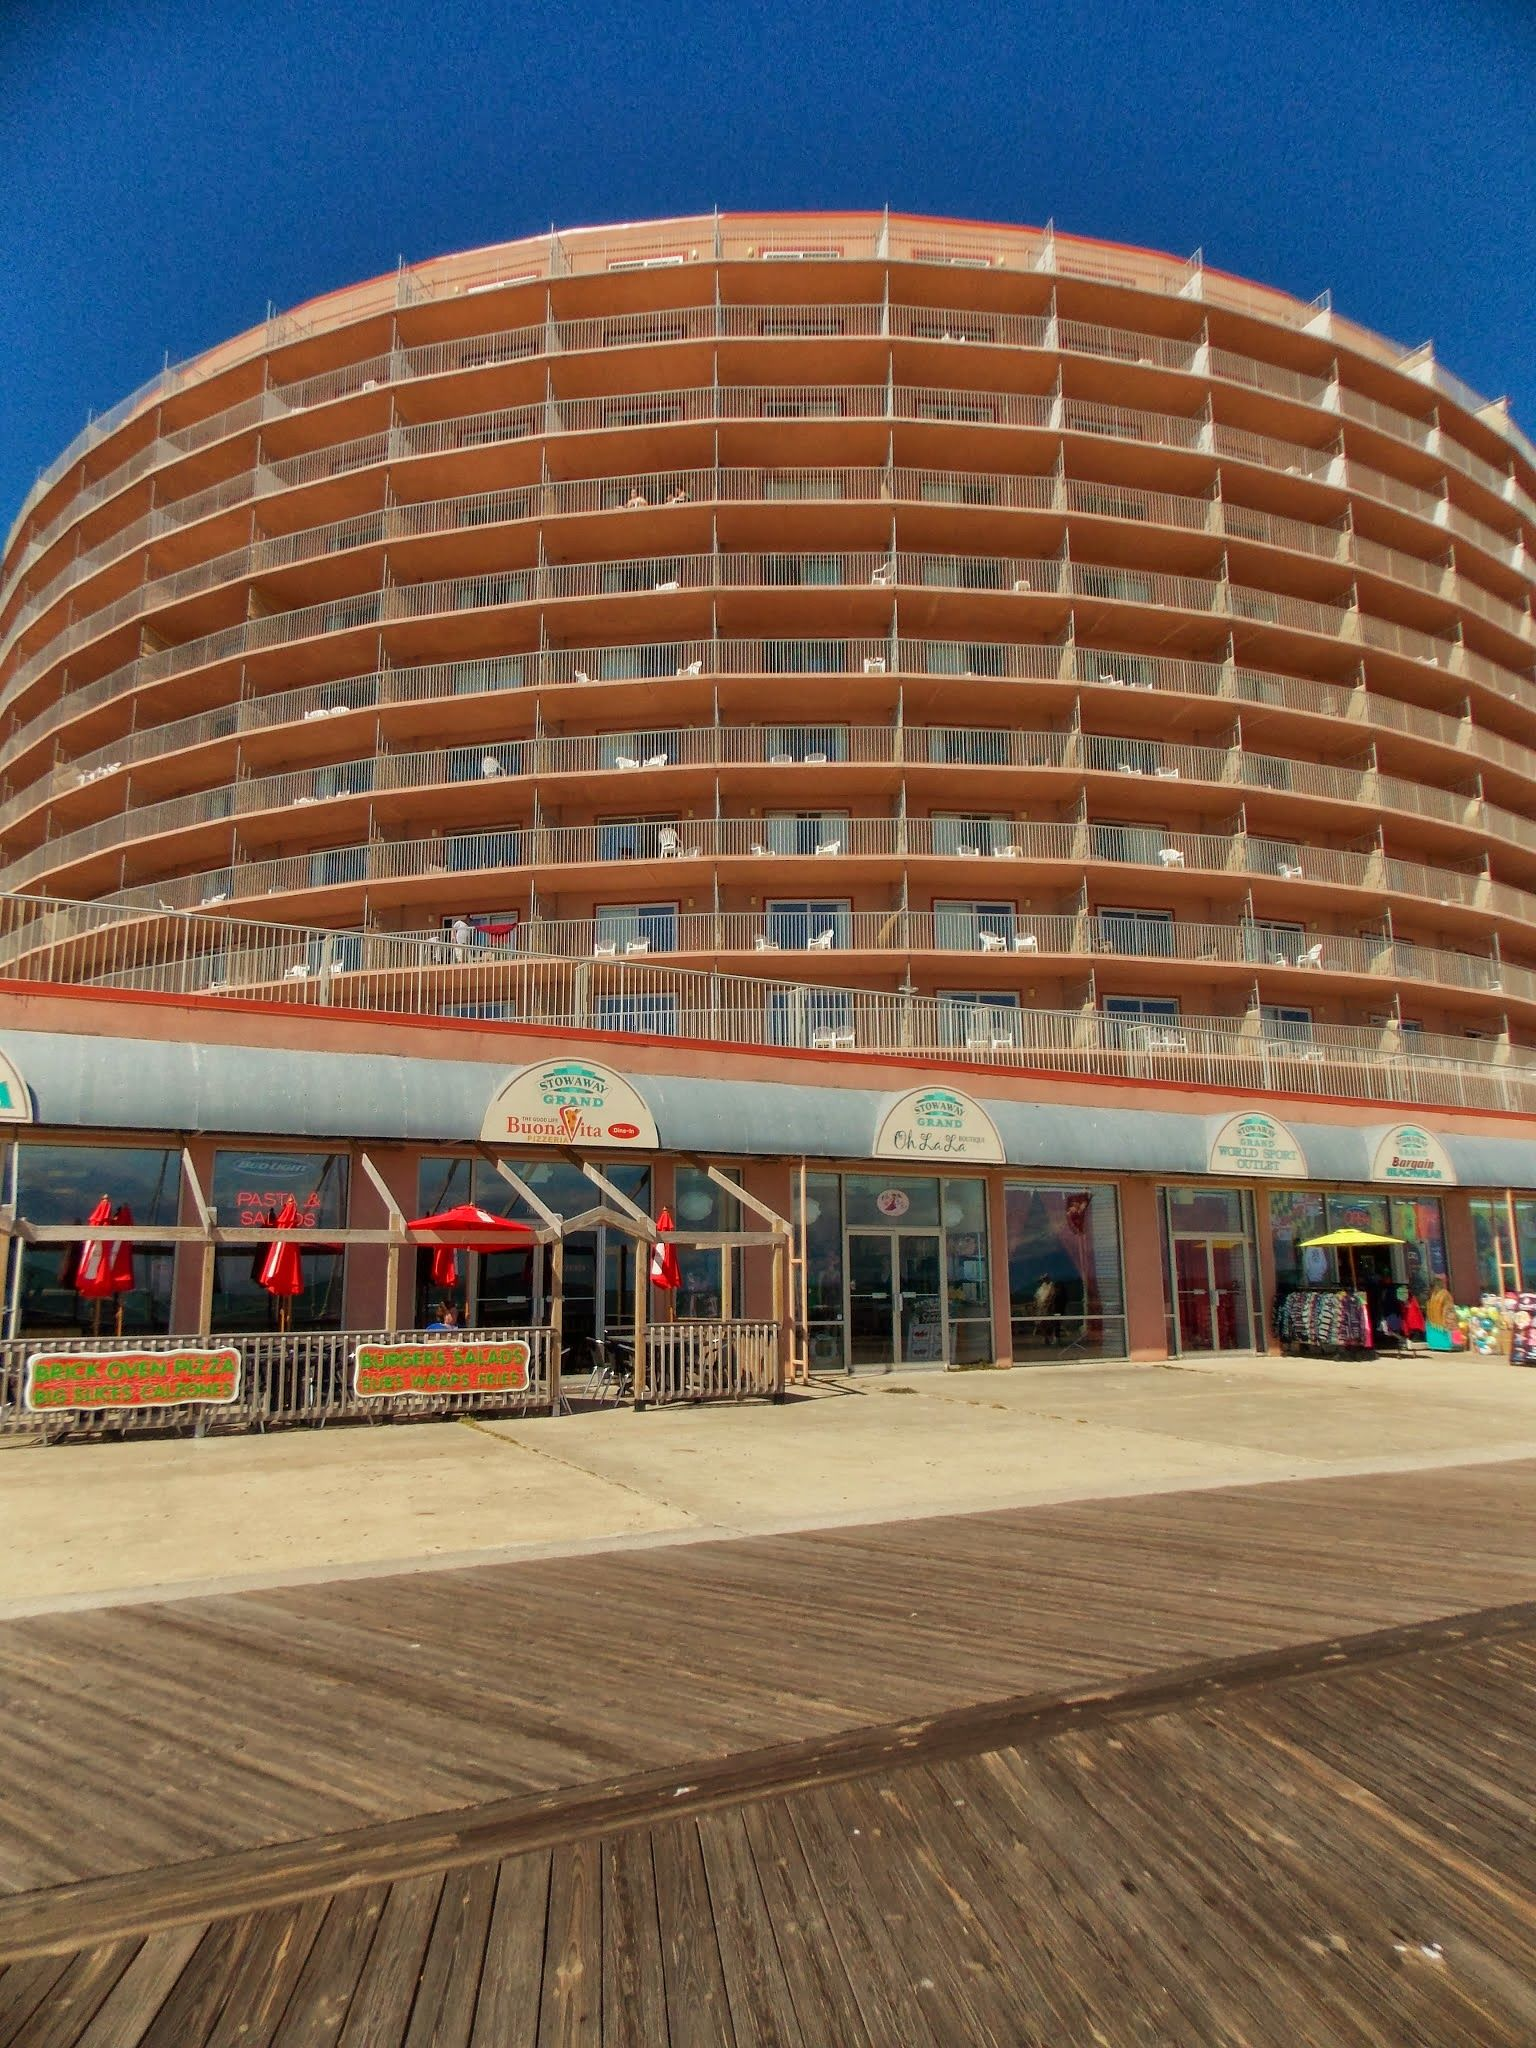 The Grand Hotel 9 27 2017 Ocean City Md Boardwalk Lea